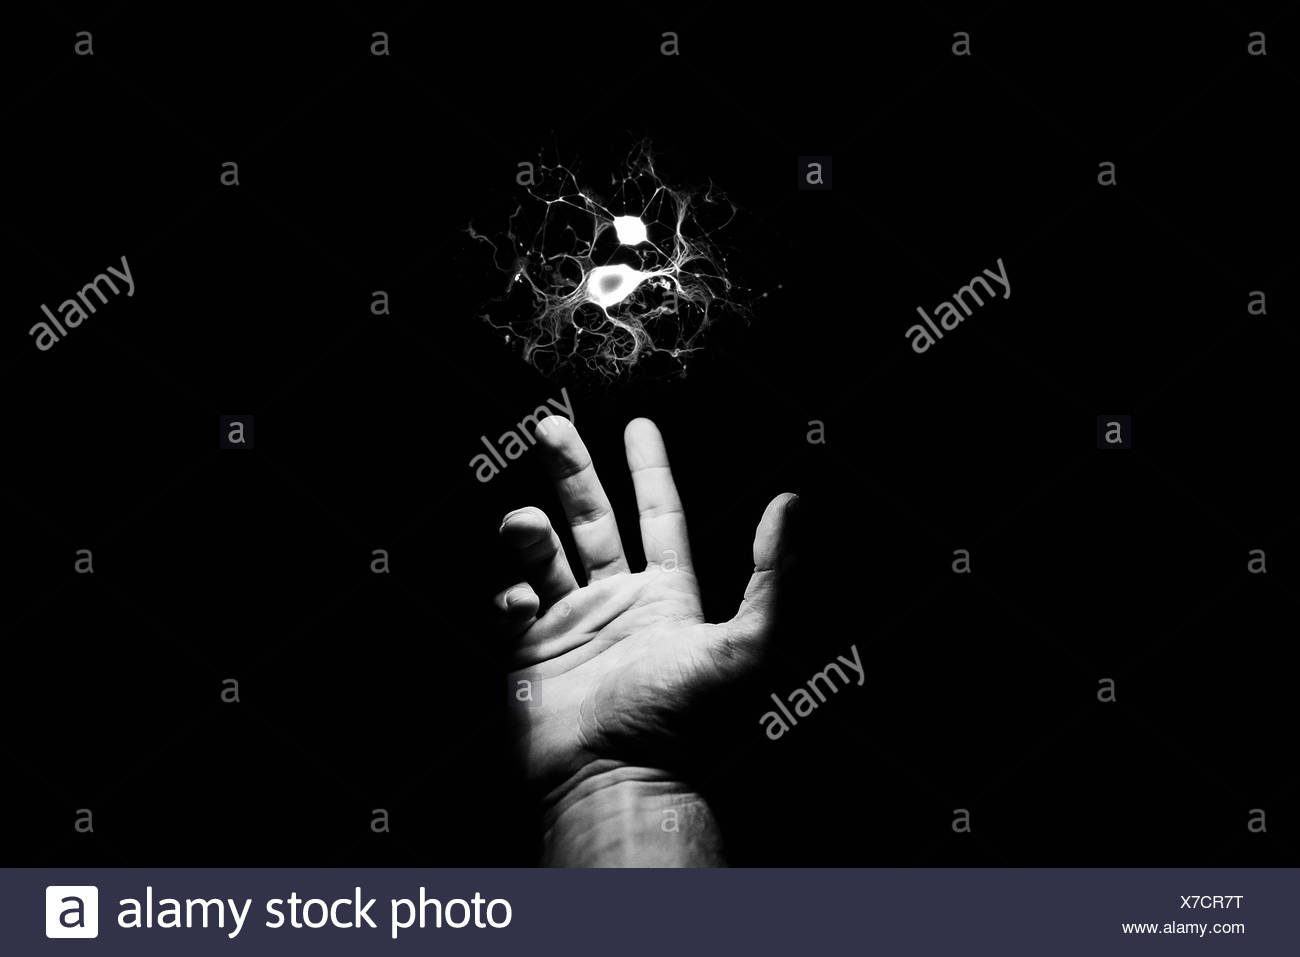 Outstretched hand reaching towards electrical spark - Stock Image